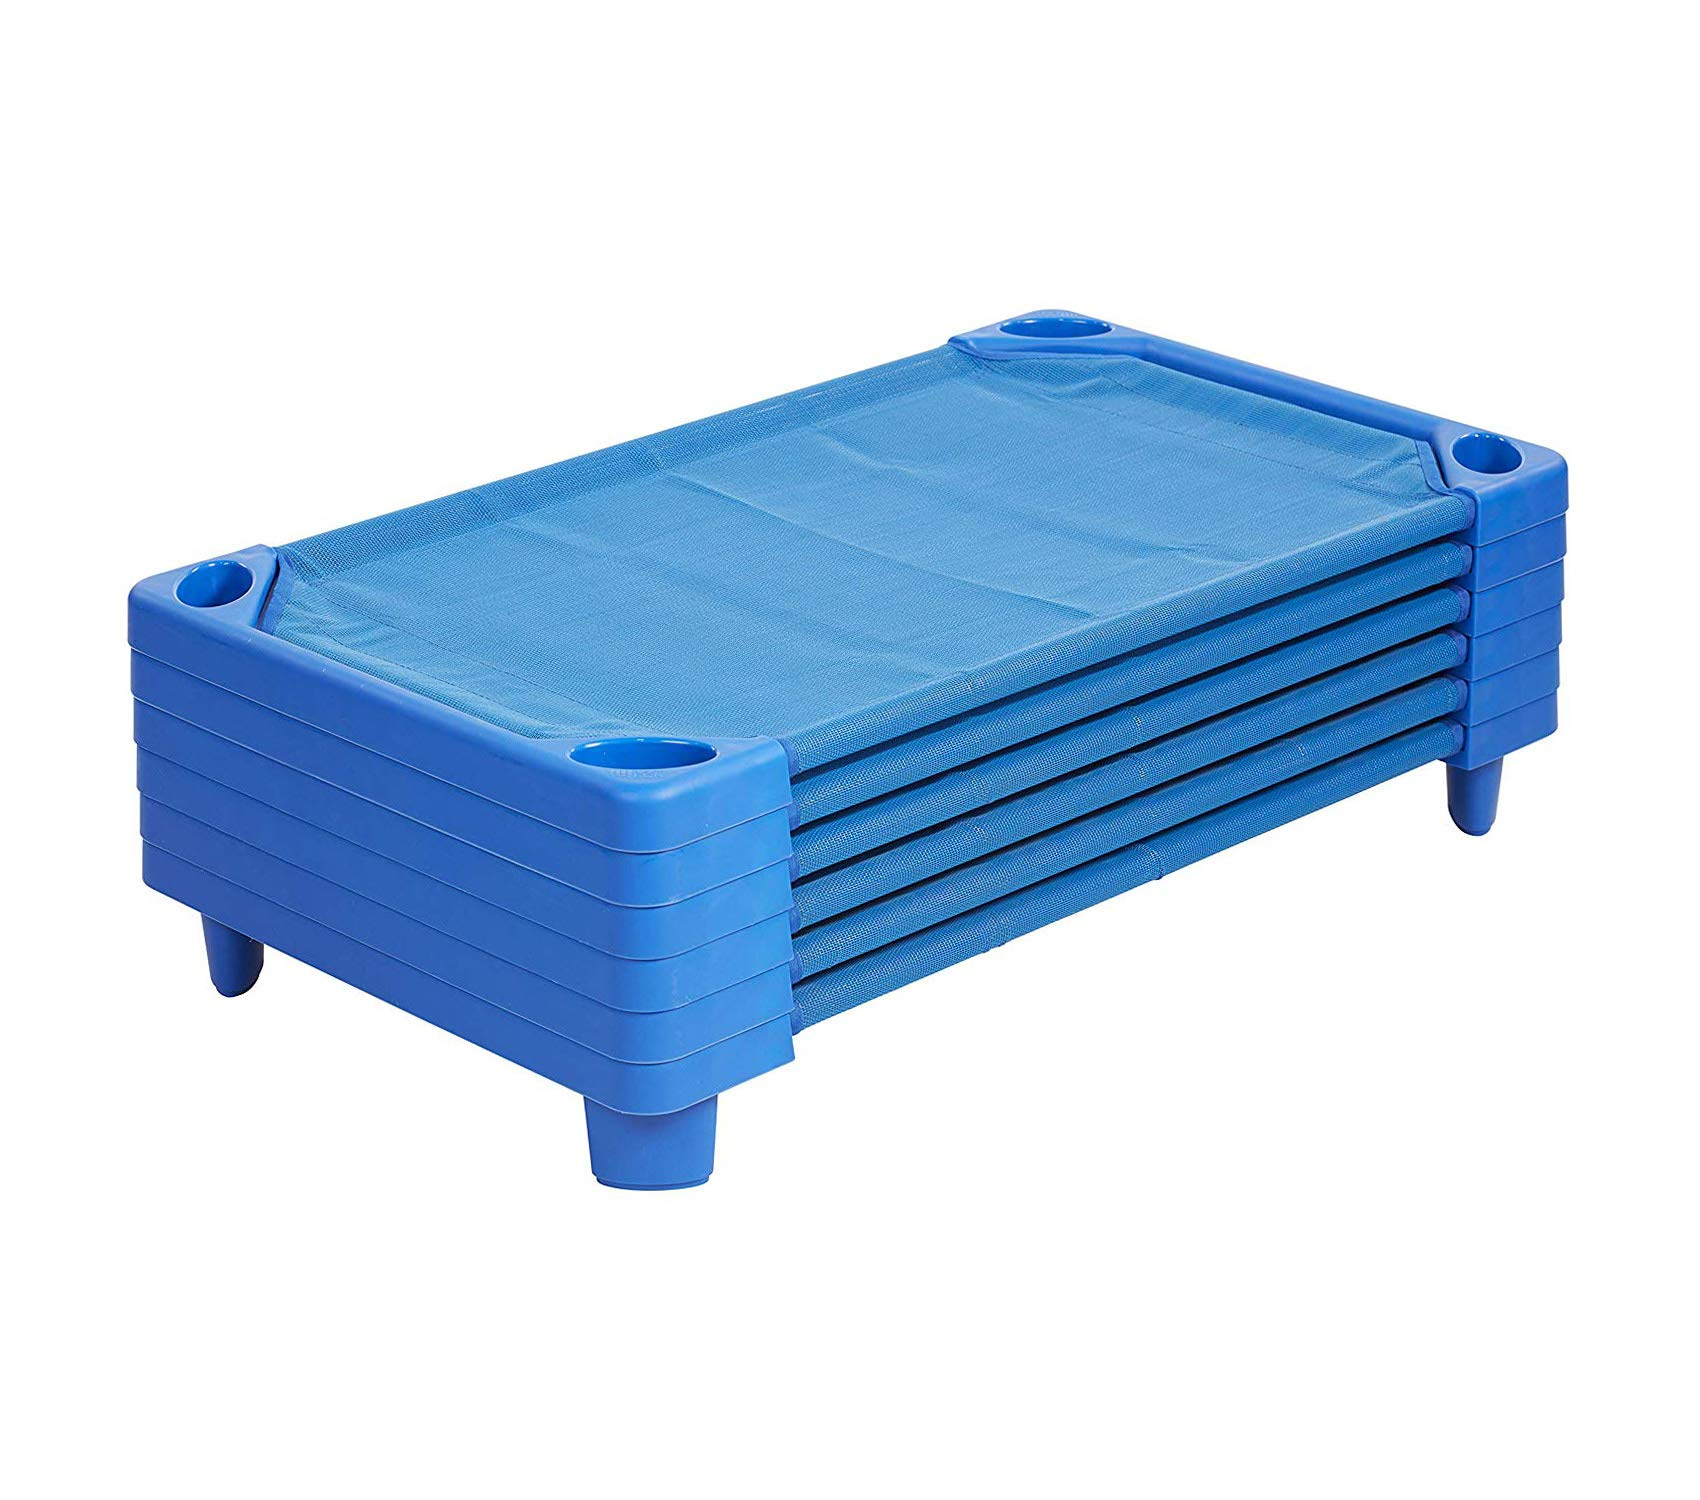 Wood & Style Toddler Naptime Cot Stackable Daycare Sleeping Cot for Kids 40in L x 23in W Ready-to-Assemble Blue Set of 6 Decor Comfy Living Furniture Deluxe Premium Collection by Wood & Style